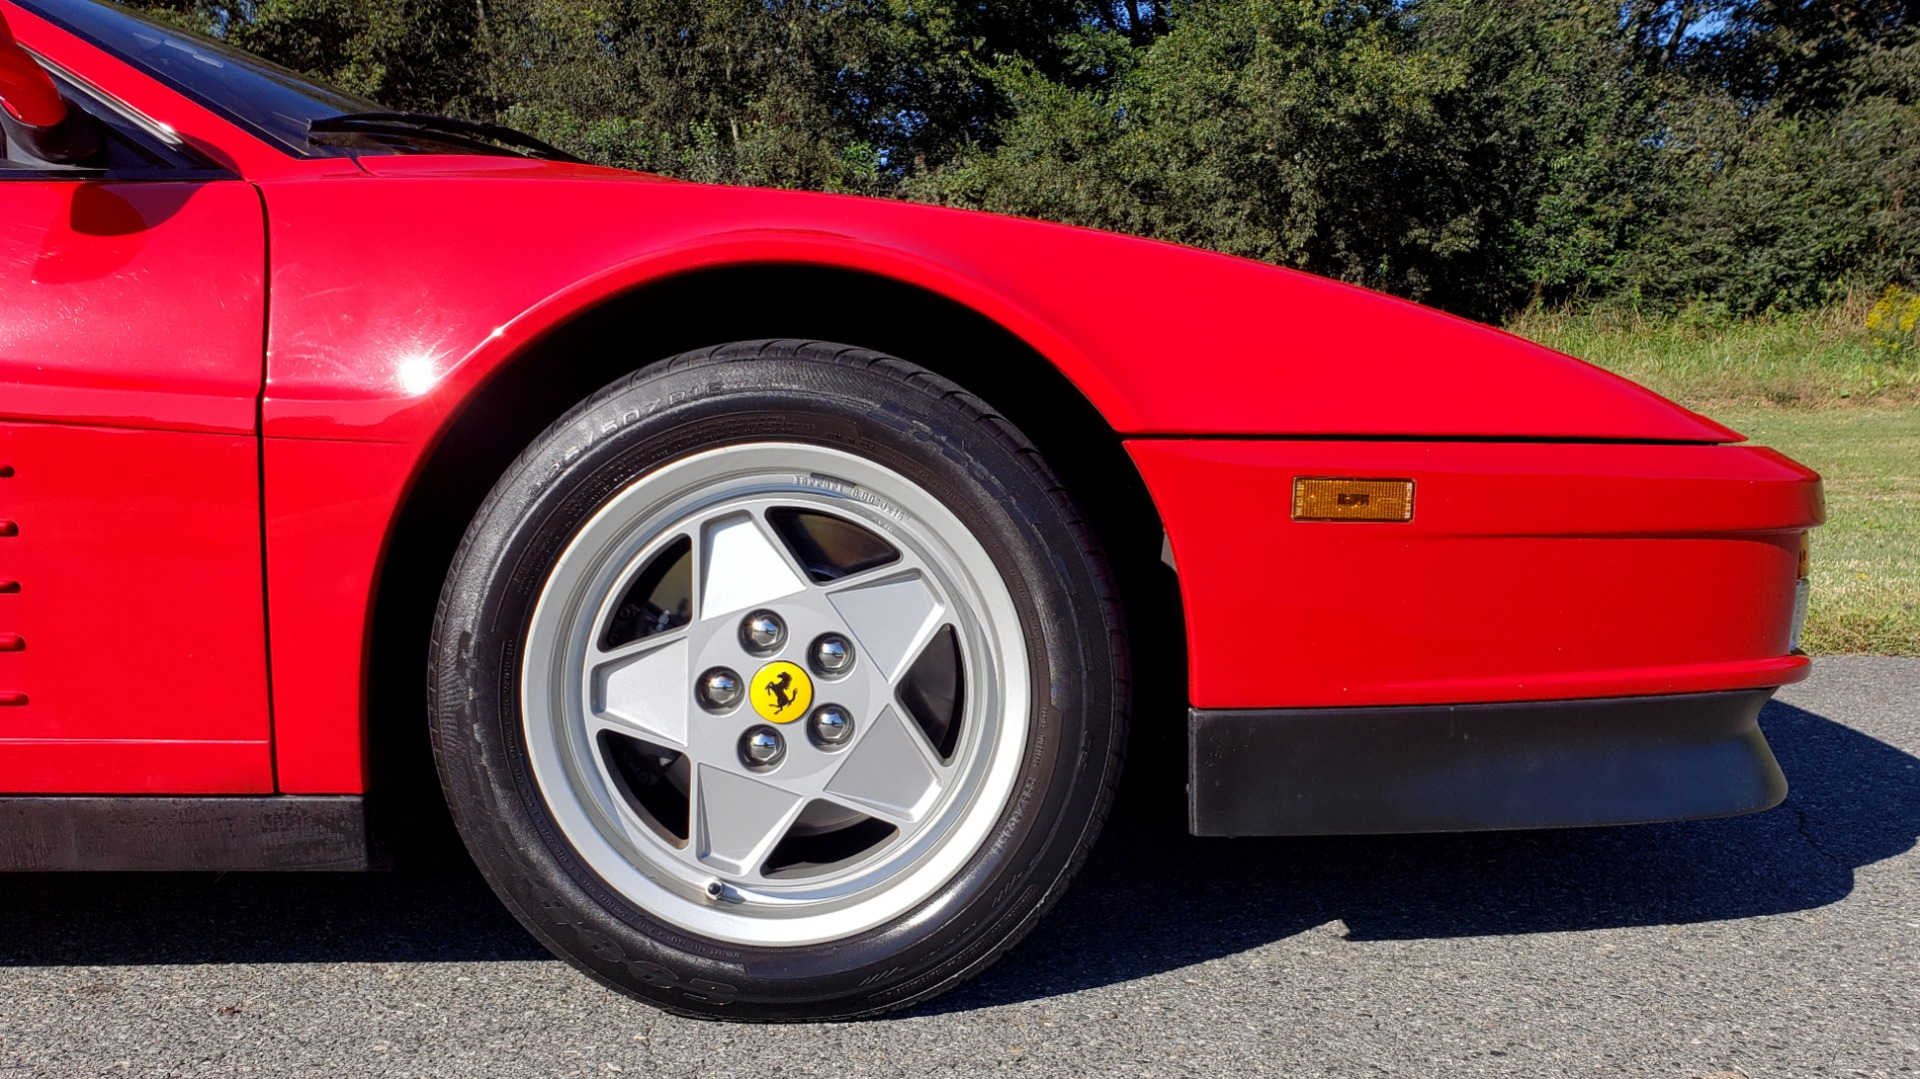 Used 1988 Ferrari TESTAROSSA COUPE / 4.9L FLAT-12 / 5-SPEED MANUAL / LOW MILES SUPER CLEAN for sale $128,999 at Formula Imports in Charlotte NC 28227 61